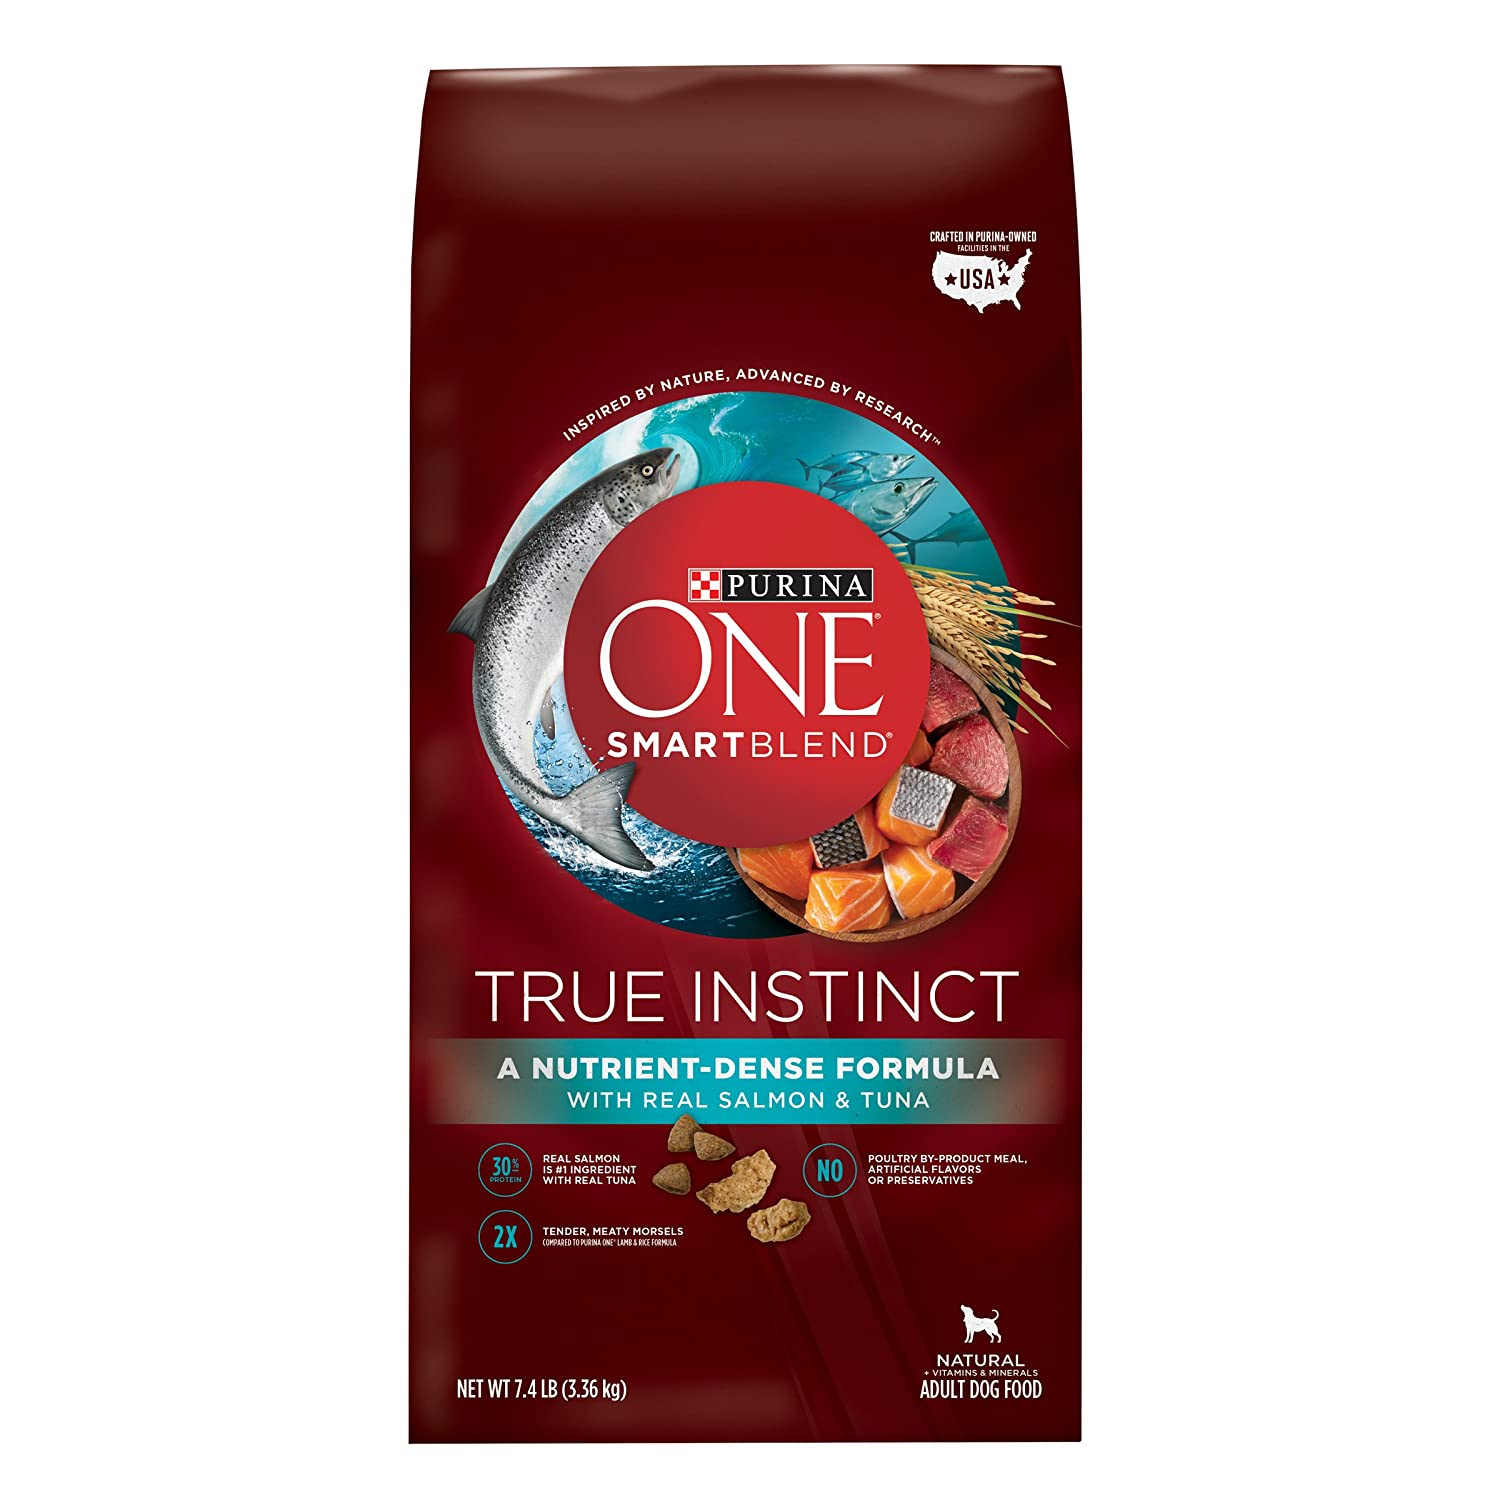 7.4 LB Purina ONE SmartBlend Dry Dog Food, True Instinct with Real Salmon & Tuna, 7.4-Pound Bag, Pack of 1